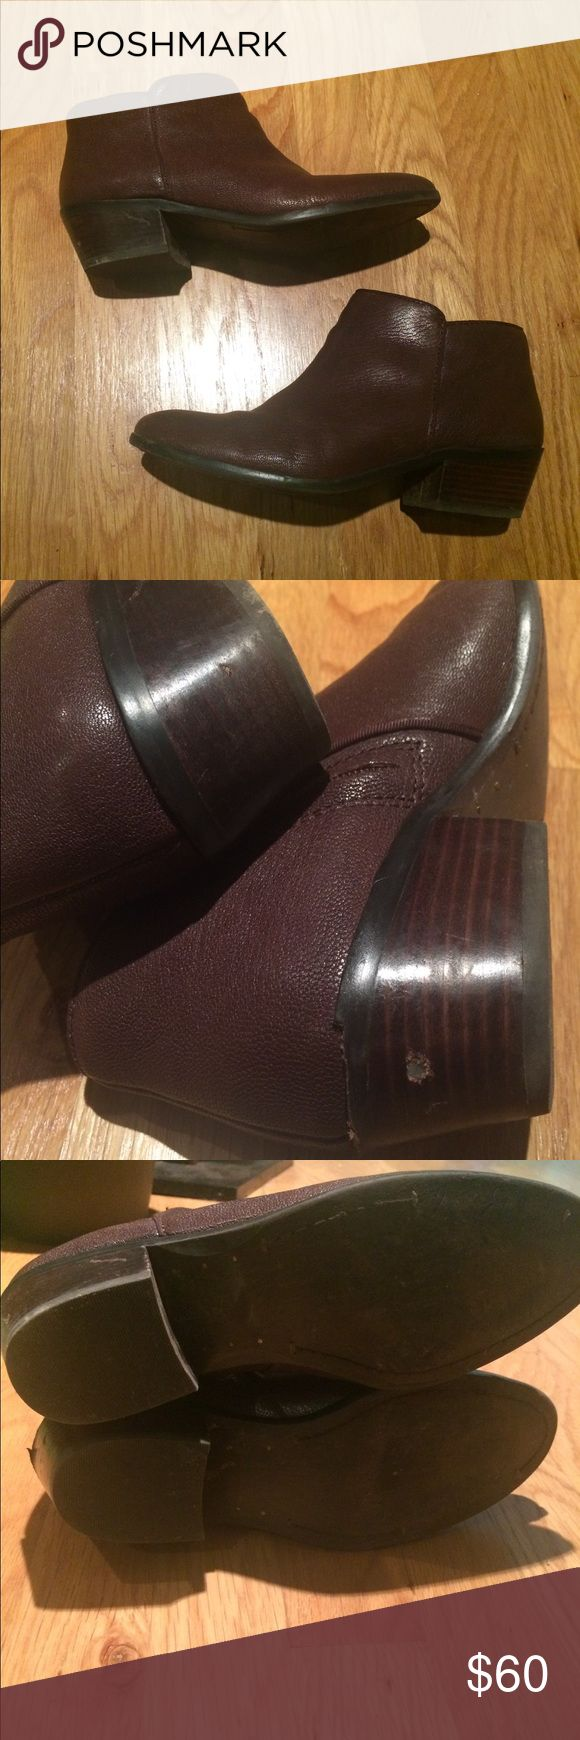 Sam Edelman chocolate brown leather side zip boots Great chocolate leather ankle booties. Some wear to heels as shown but otherwise solid shape with plenty of life left! Sam Edelman Shoes Ankle Boots & Booties